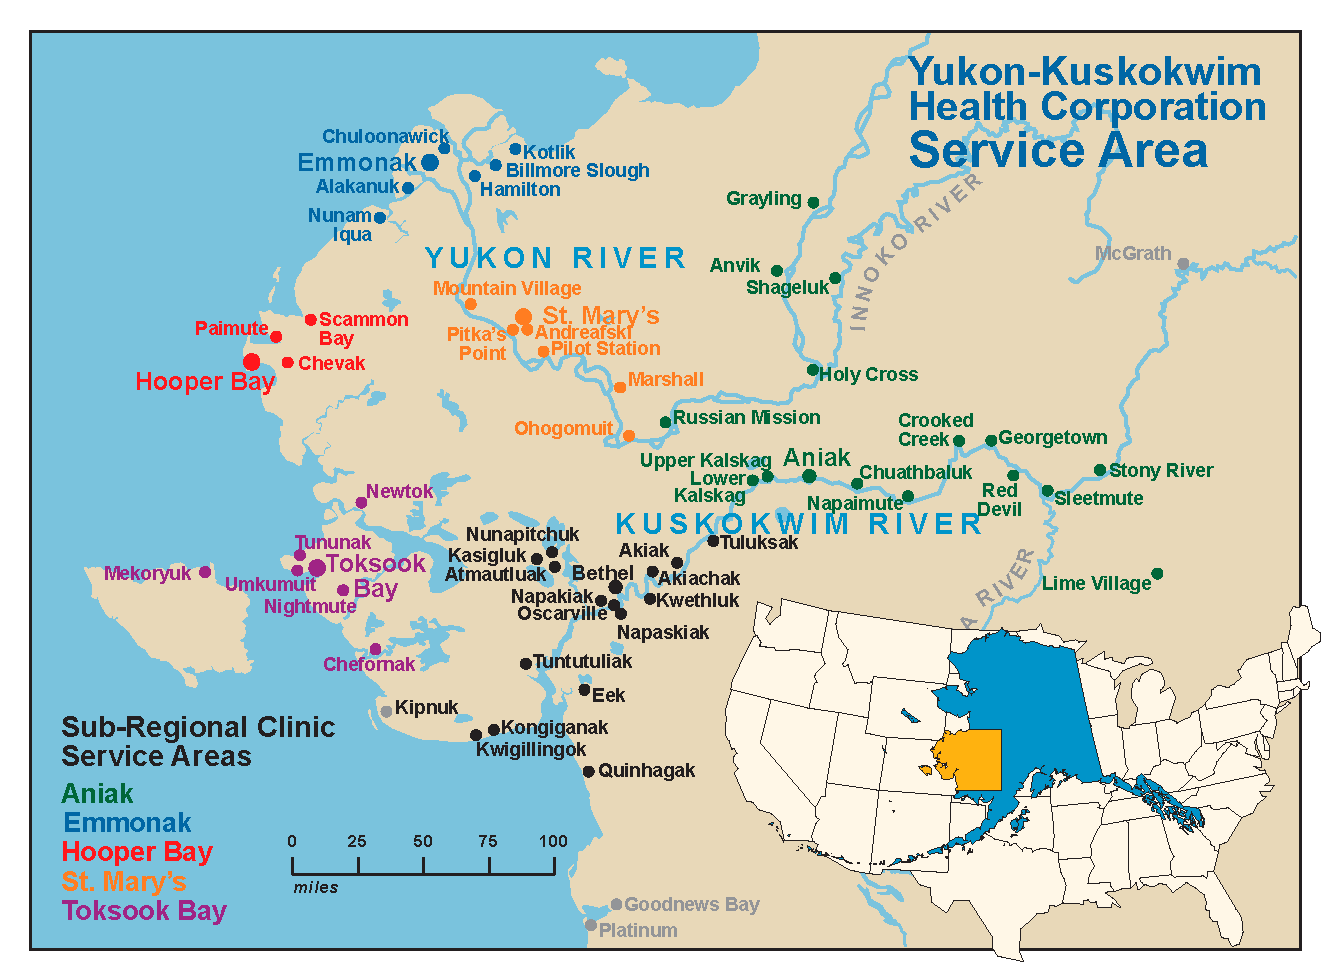 People, Place, and Culture - Guide to YKHC Medical Practices on chitina river map, stikine river map, kobuk river map, red devil, cimarron river map, innoko river map, gulkana river map, chilkoot river map, susitna river map, colville river map, willamette river map, wrangell mountains, noatak river map, eklutna river map, north canadian river map, tanana river, bering sea river map, tanana river map, yukon river, sheenjek river map, norton sound, mcneil river map, colville river, wind river map, talkeetna river map, stikine river, deshka river map,